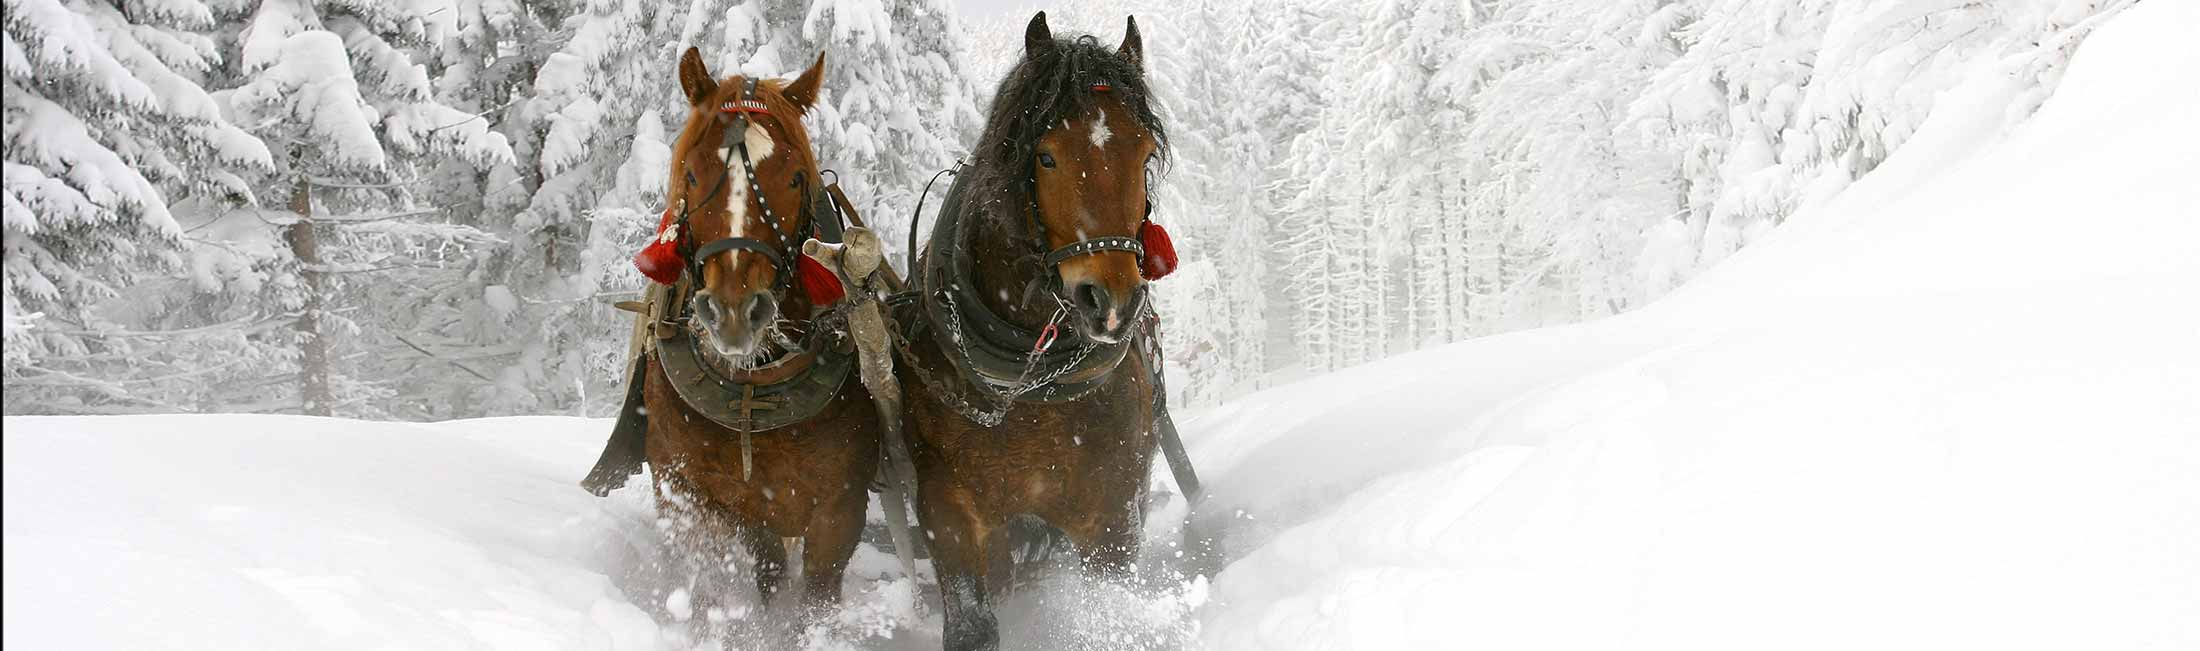 Take Time For a Sleigh Ride